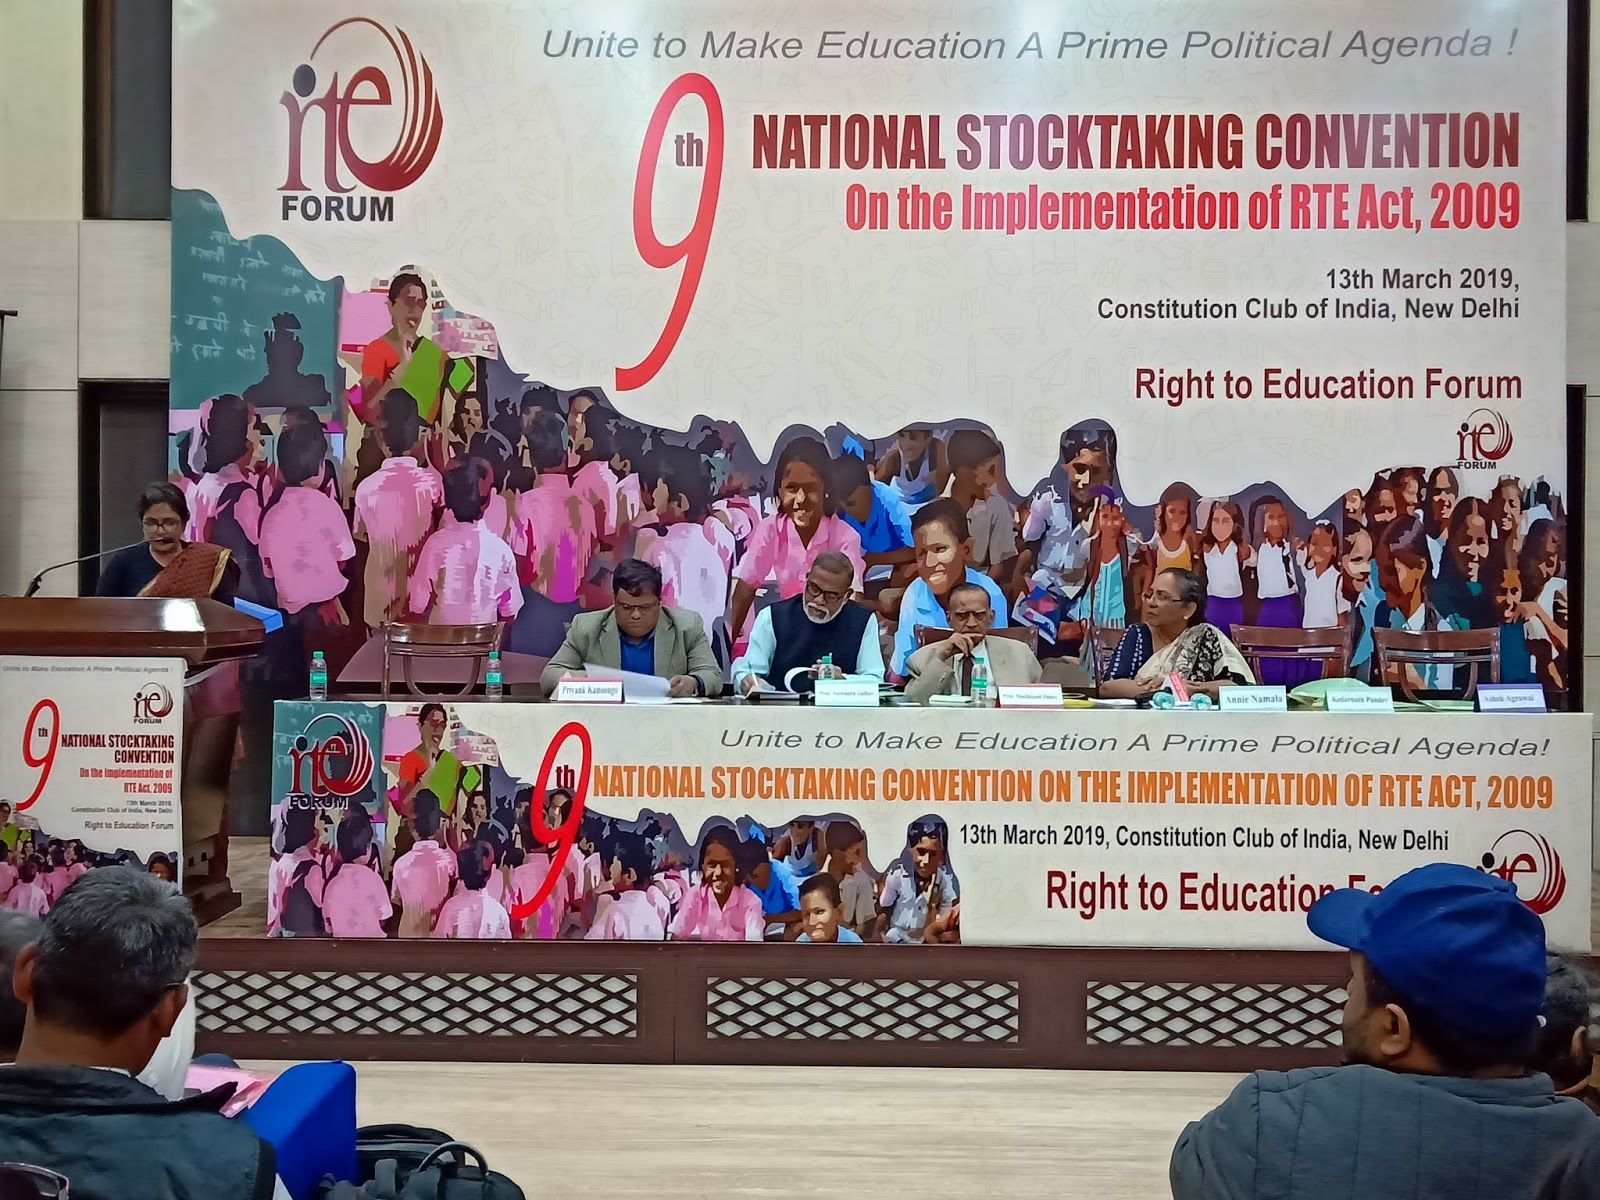 Only 12 7% schools comply with Right to Education, progress